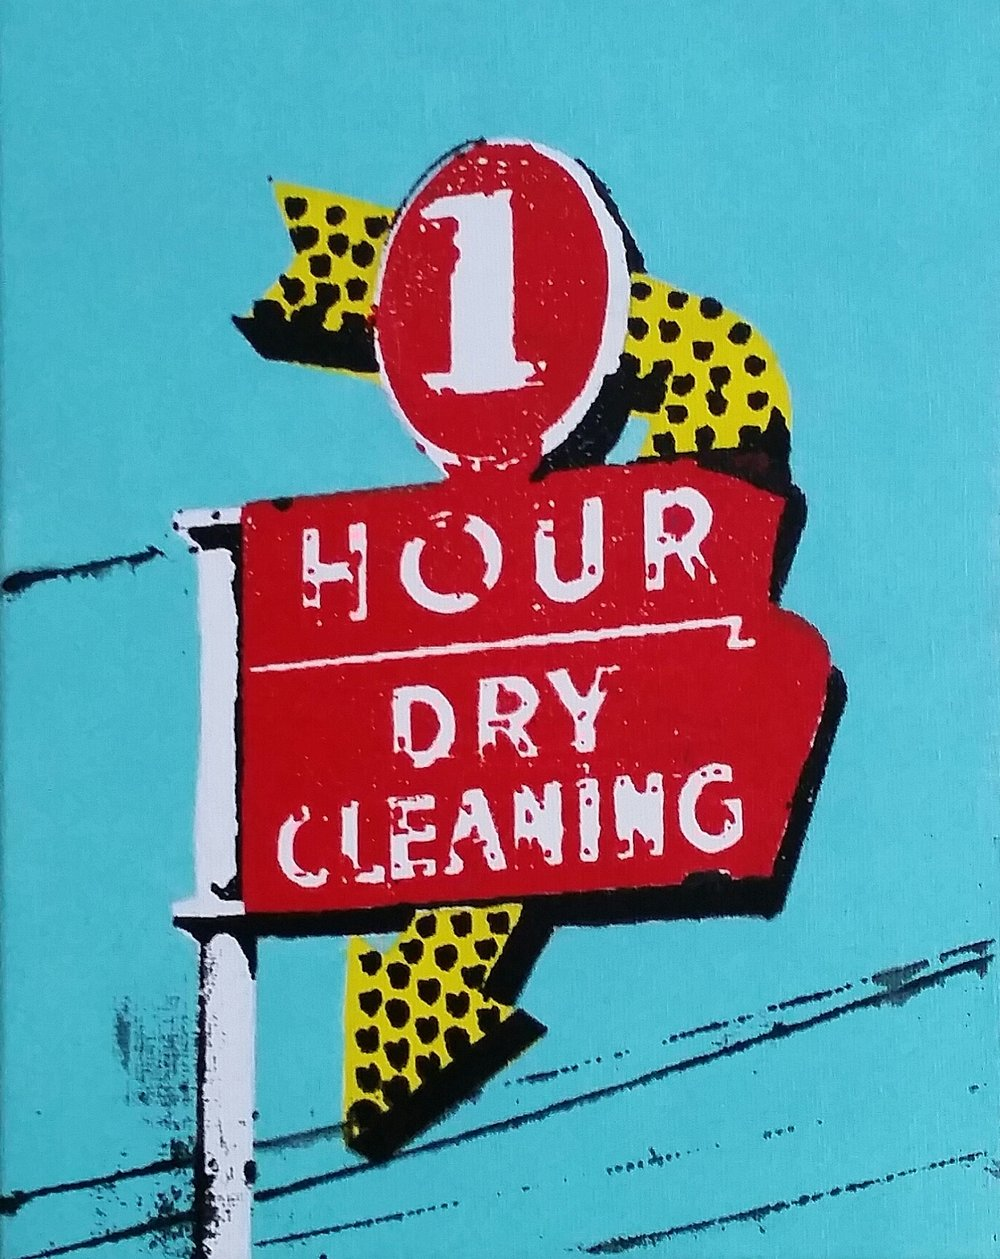 1 Hour Dry Cleaning (2018)